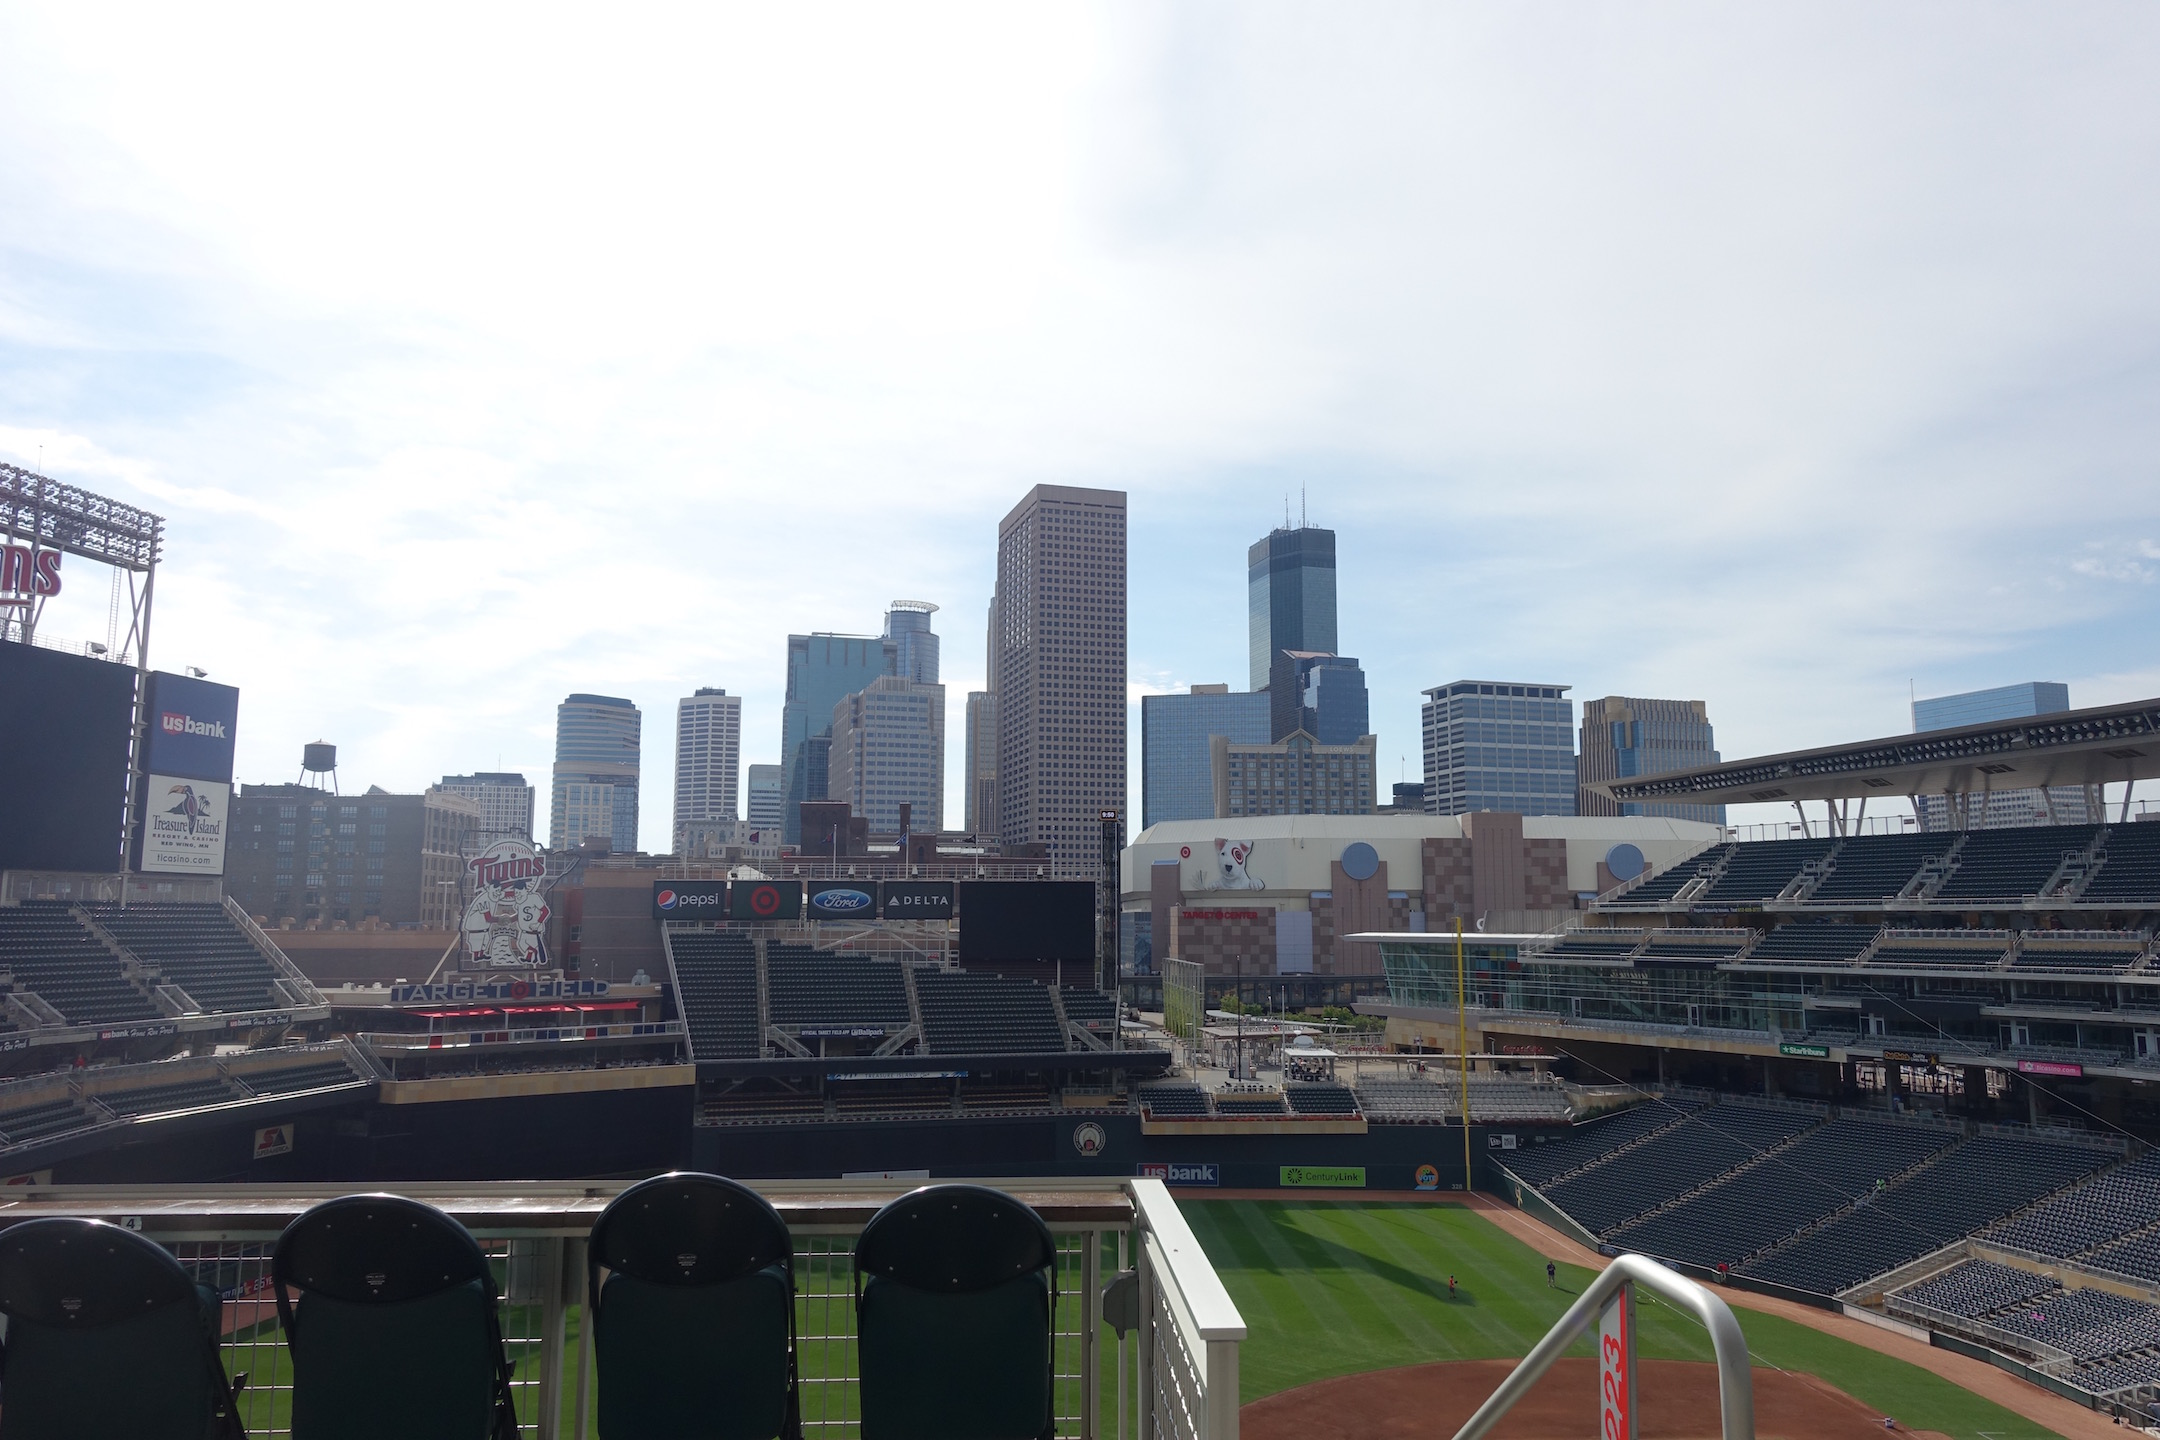 It was a beautiful fall day for the game with the downtown Minneapolis skyline in the background. Photo Credit: Ryan Schaal